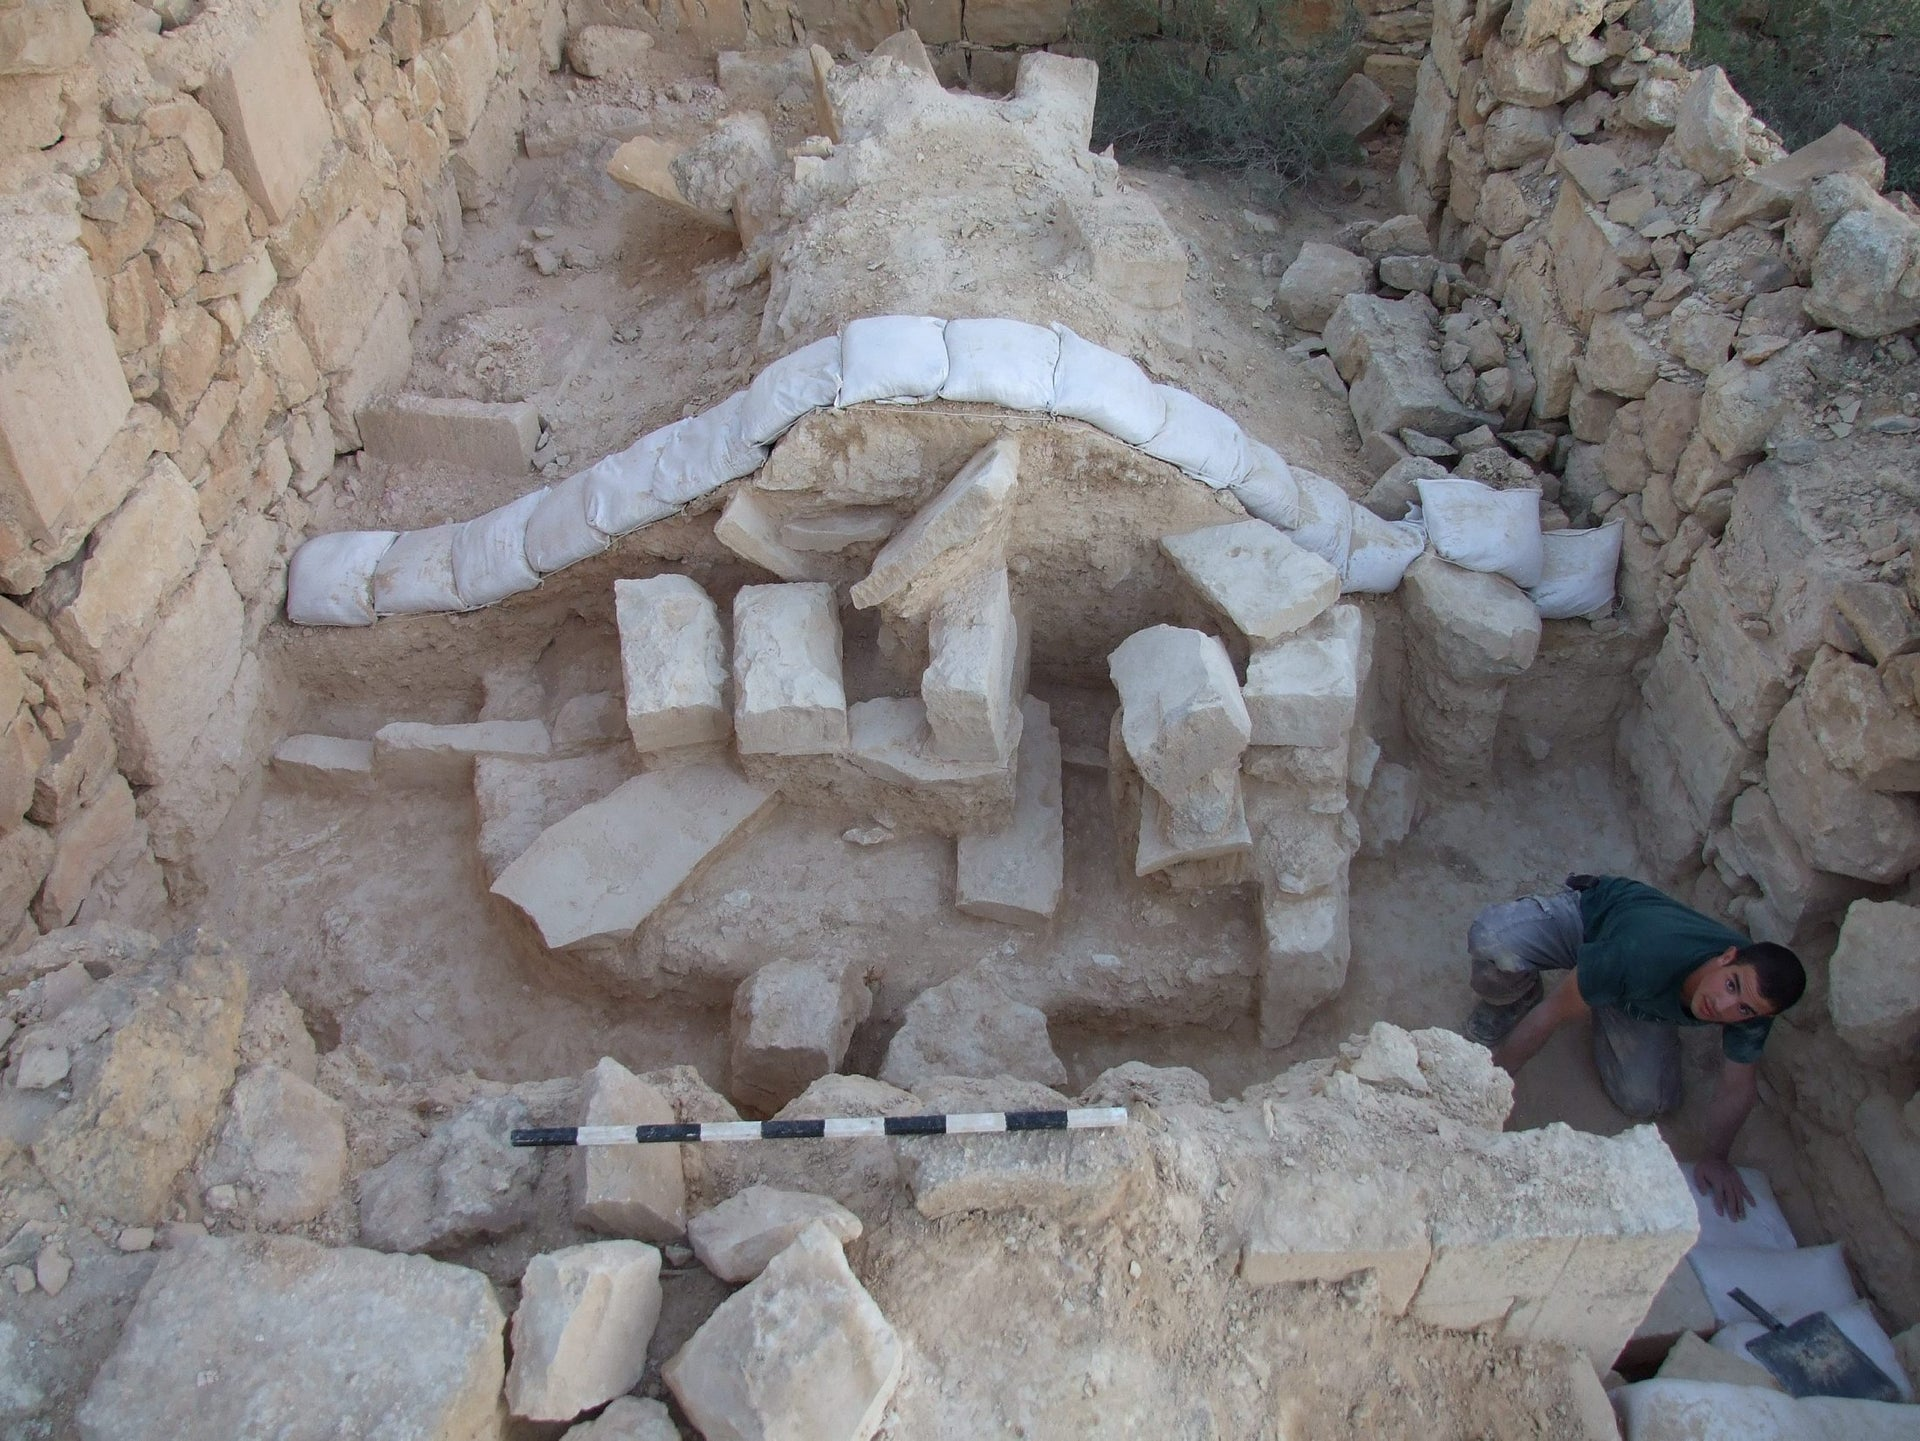 The ruins of a house in ancient Shivta that seems to have been destroyed by earthquake